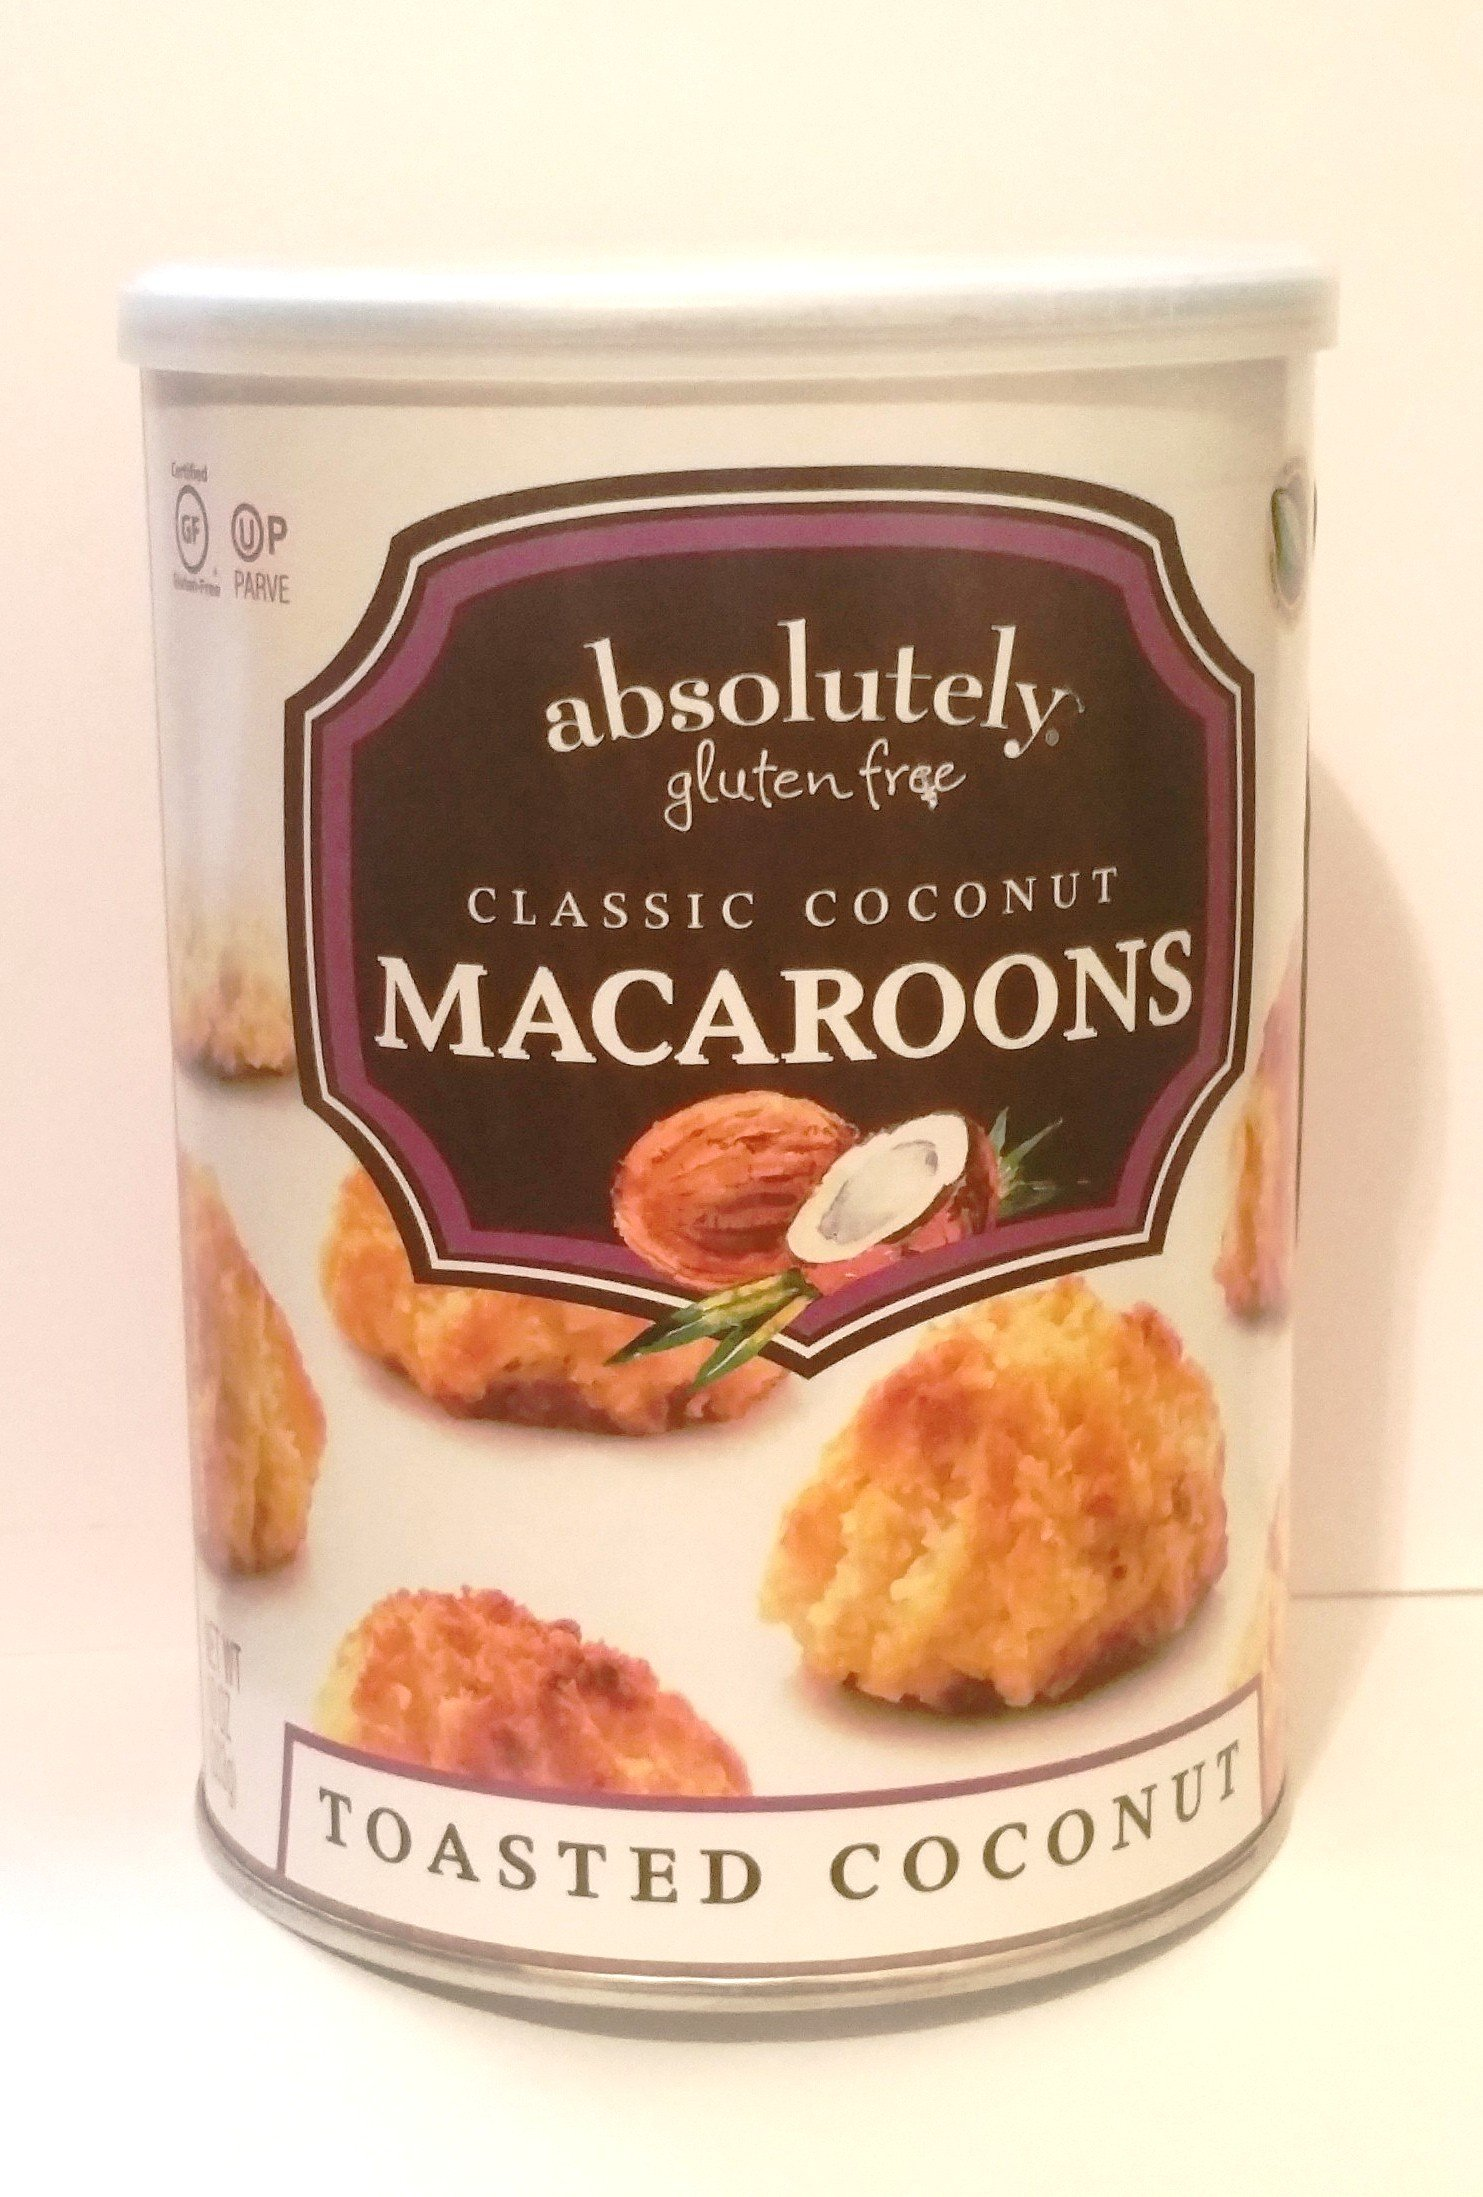 Absolutely Gluten Free Classic Toasted Coconut Macaroons Kosher For Passover 10 oz.